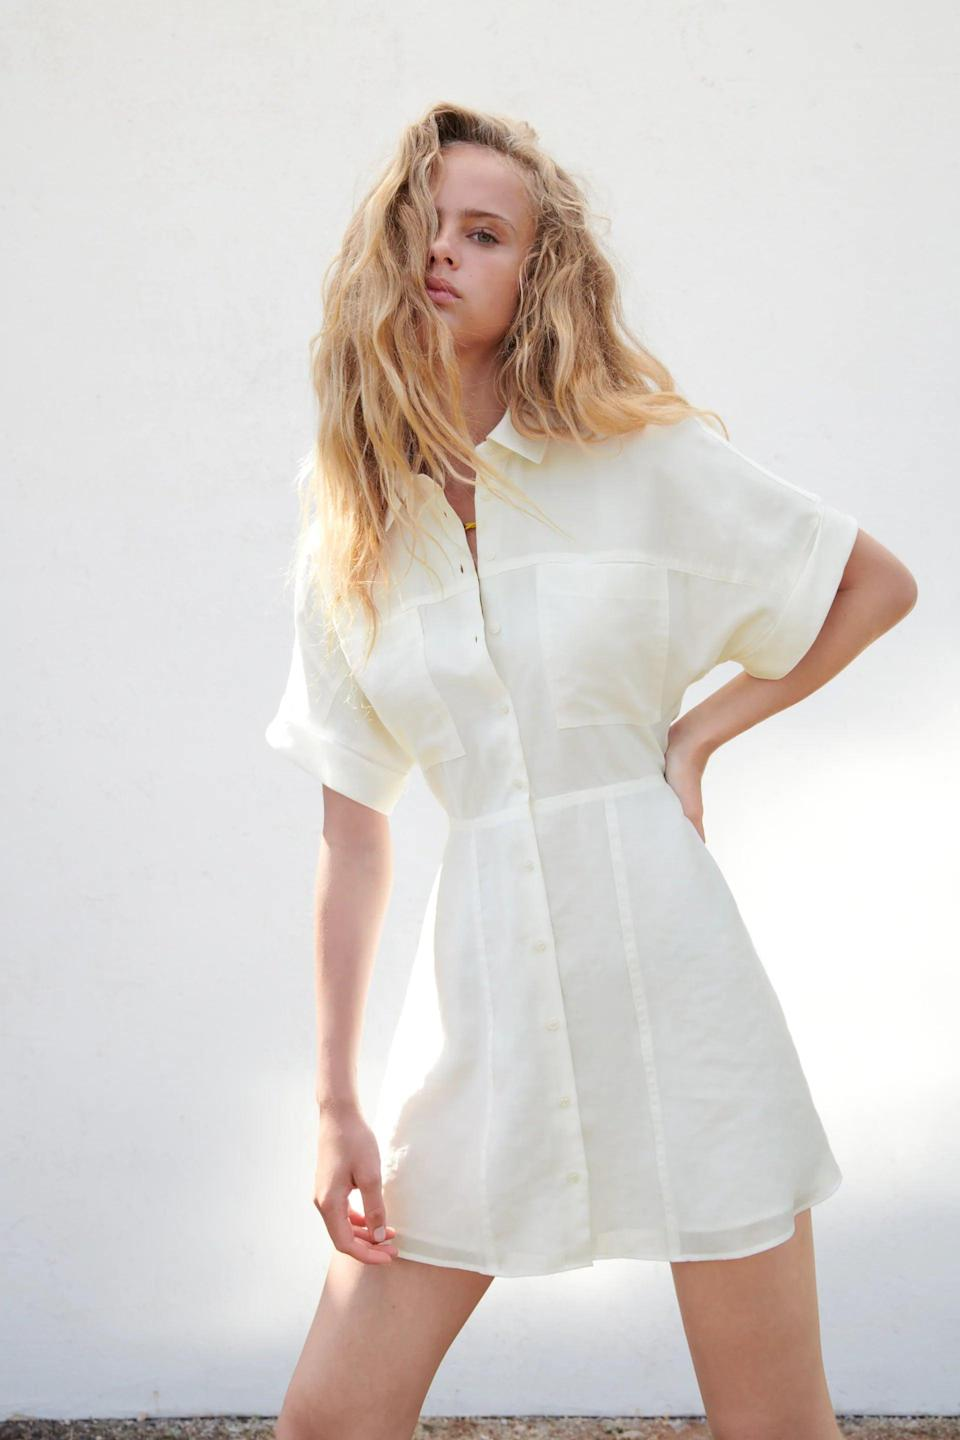 <p>We like shirt dresses because they're a great option when you're short on time. This classic <span>Zara Short Shirt Dress</span> ($46) is one you'll have in your closet for seasons to come.</p>